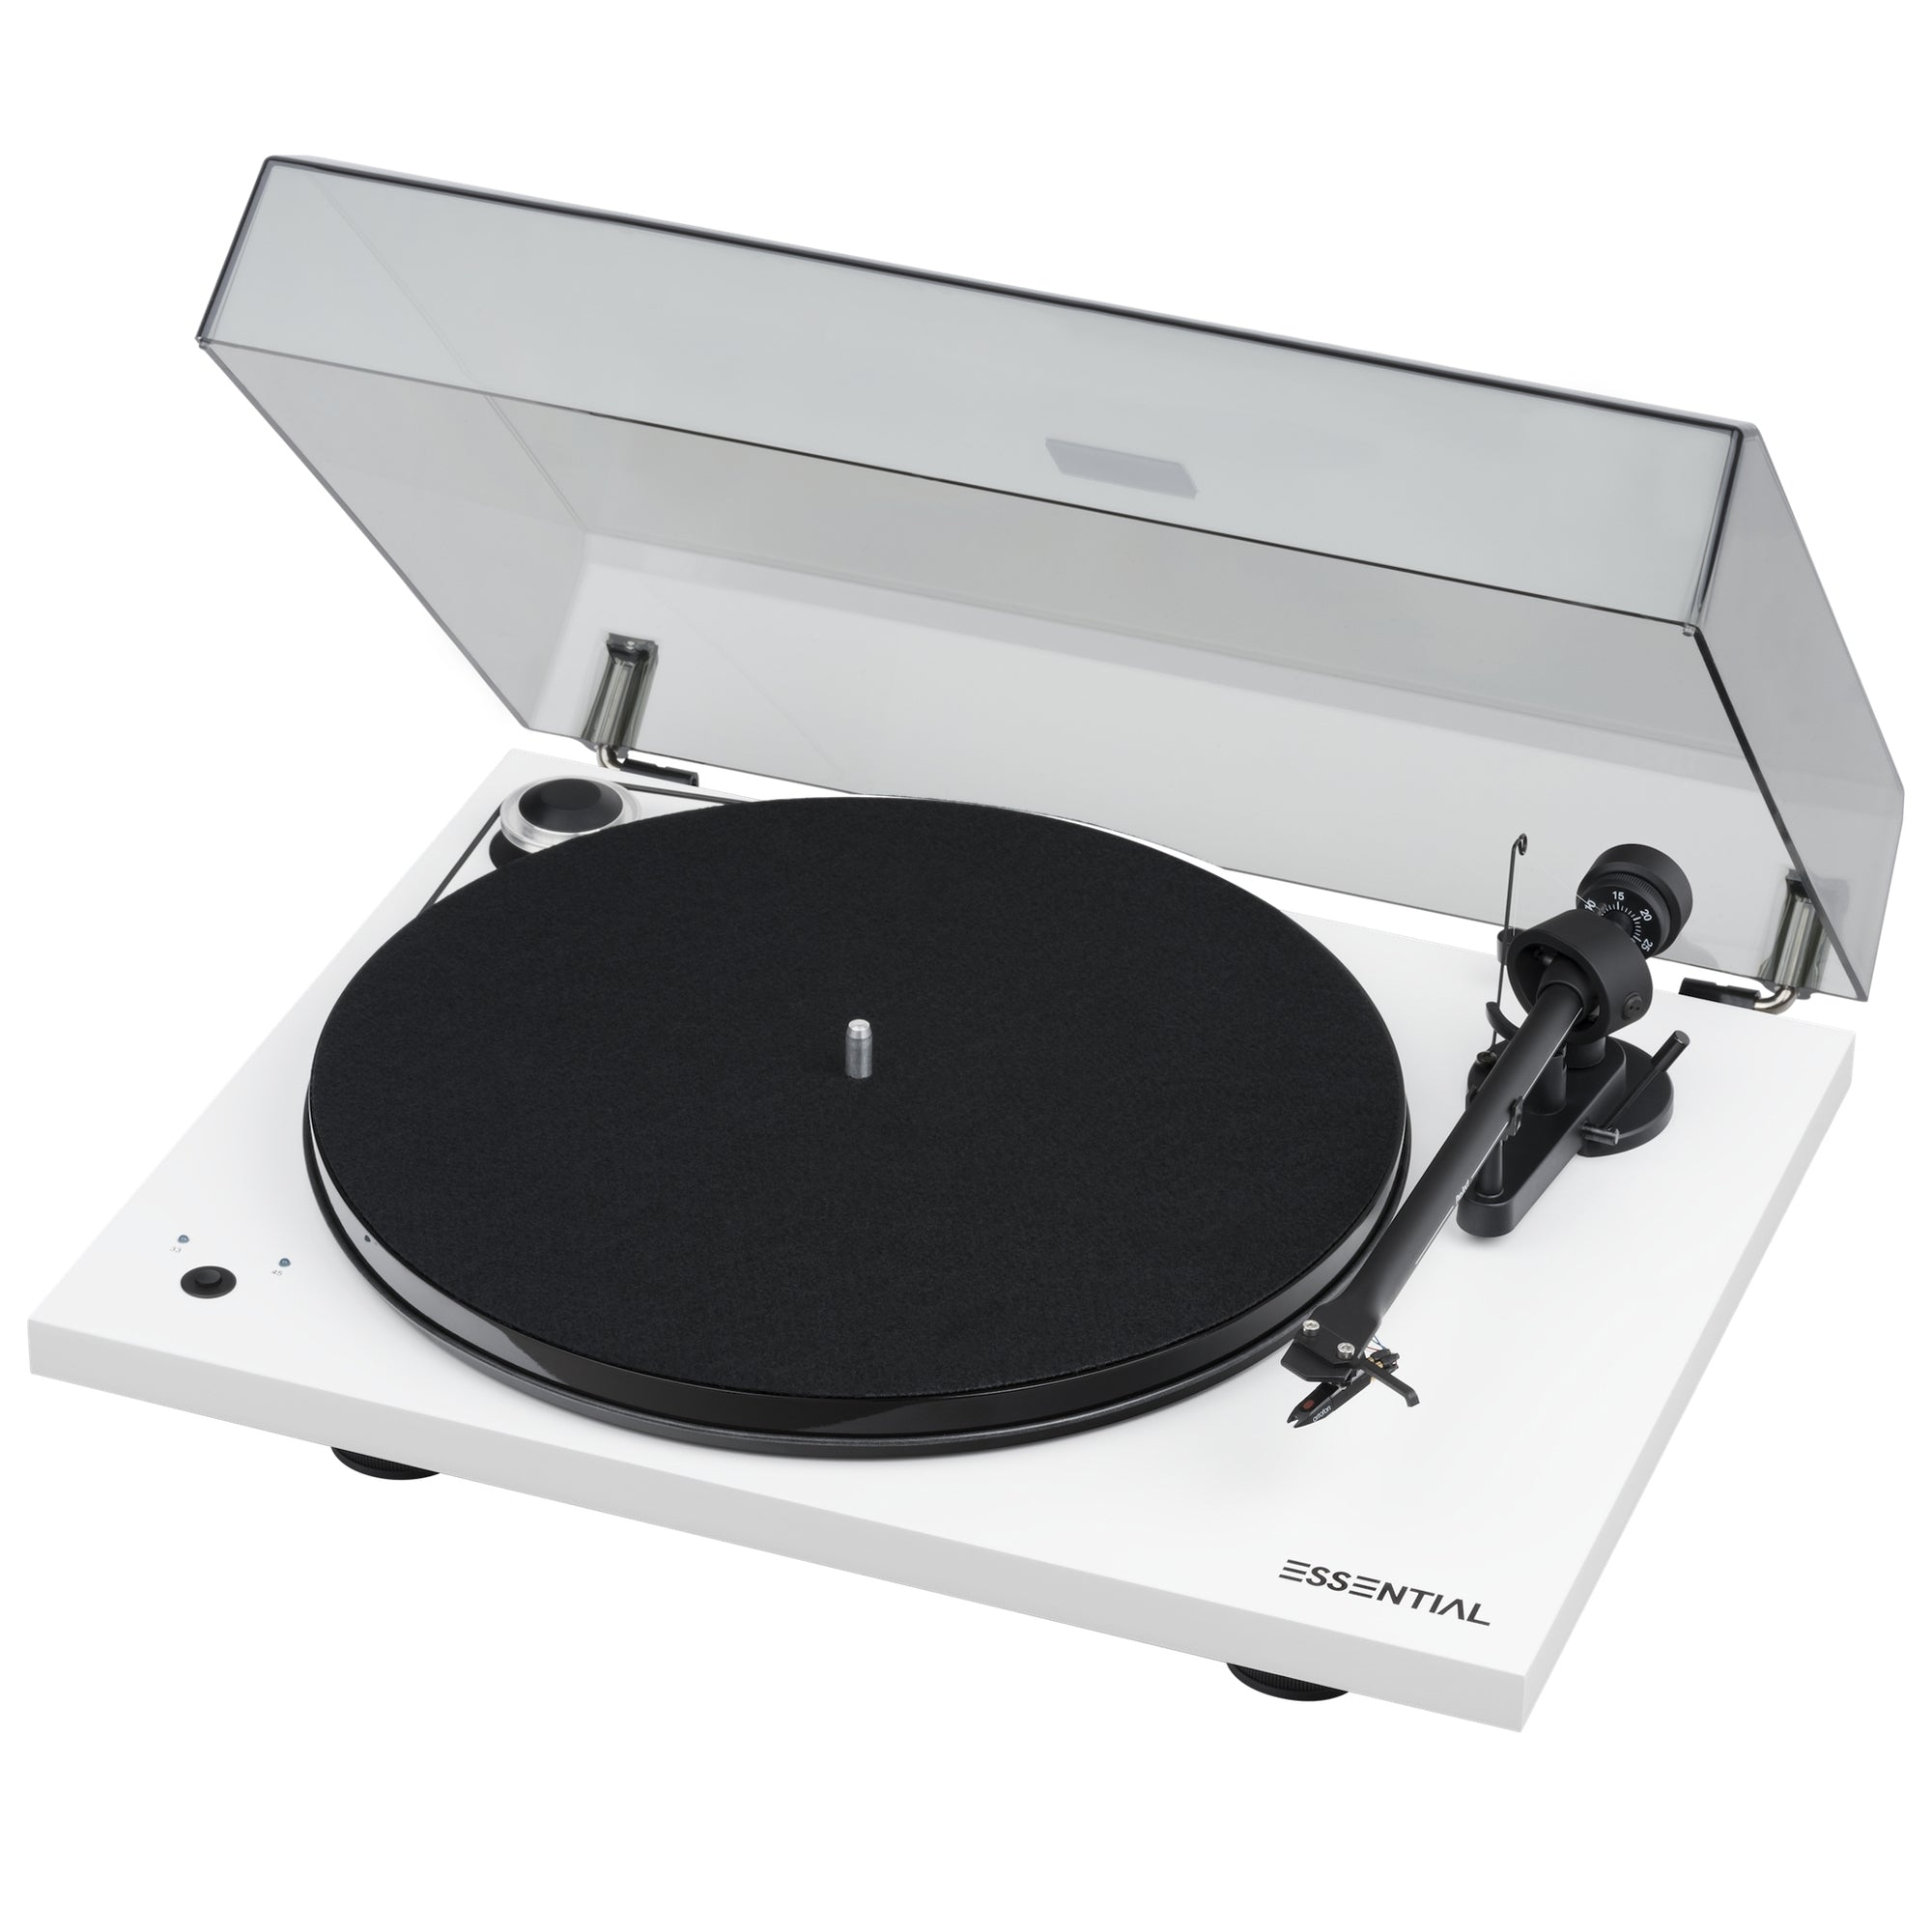 Pro-Ject Essential III Turntable with USB Recording